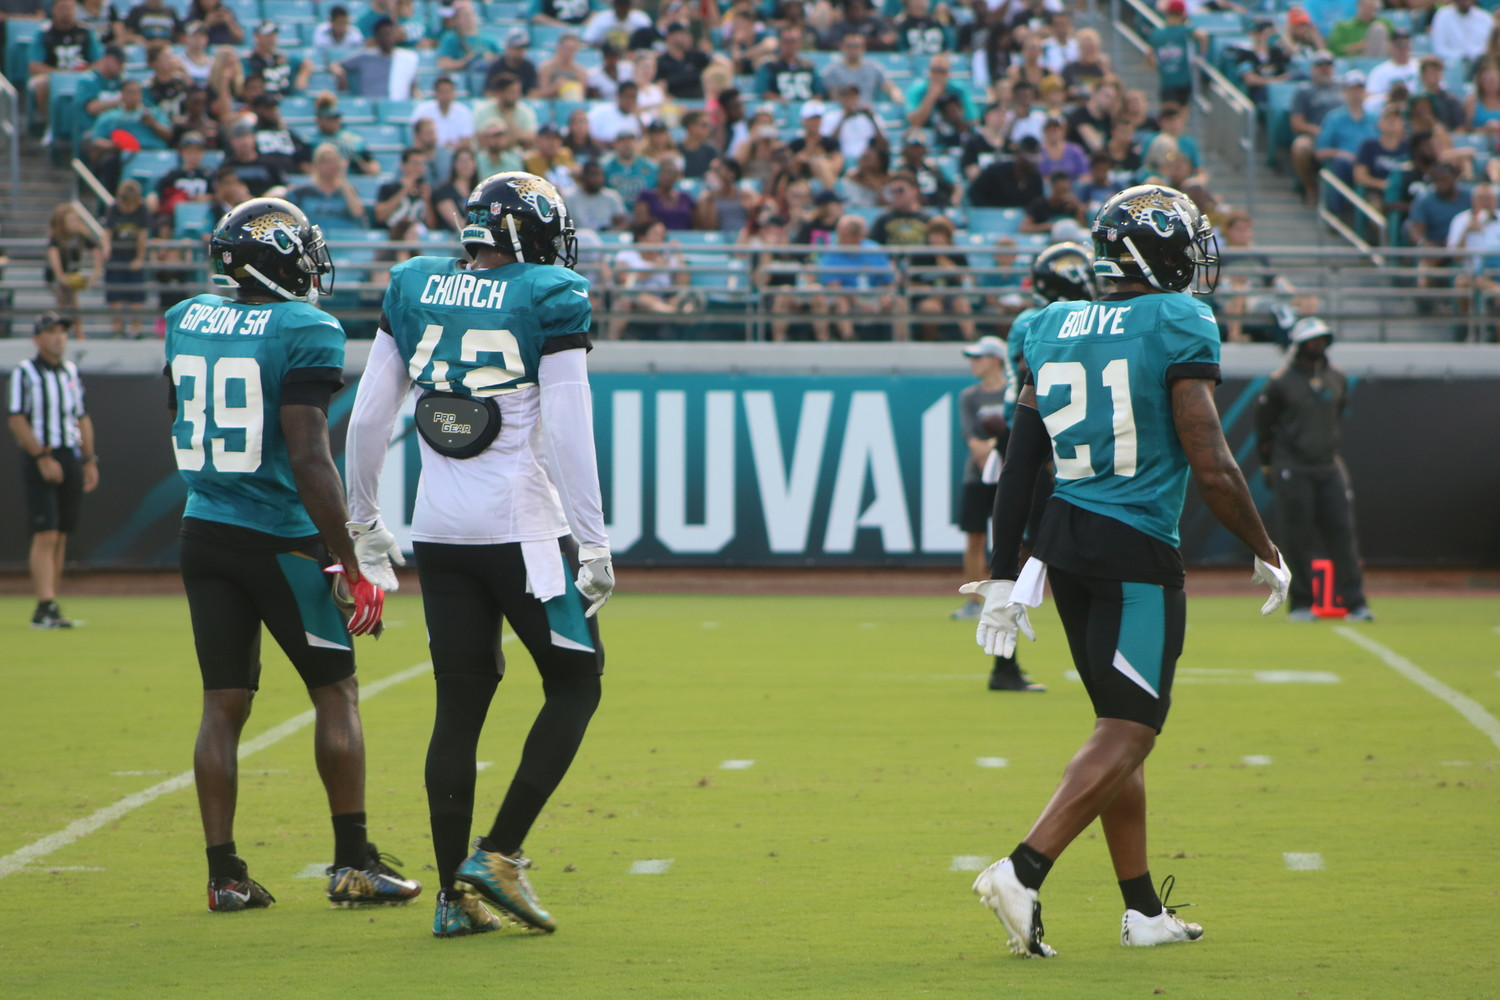 Jaguars defenders regroups during the scrimmage.